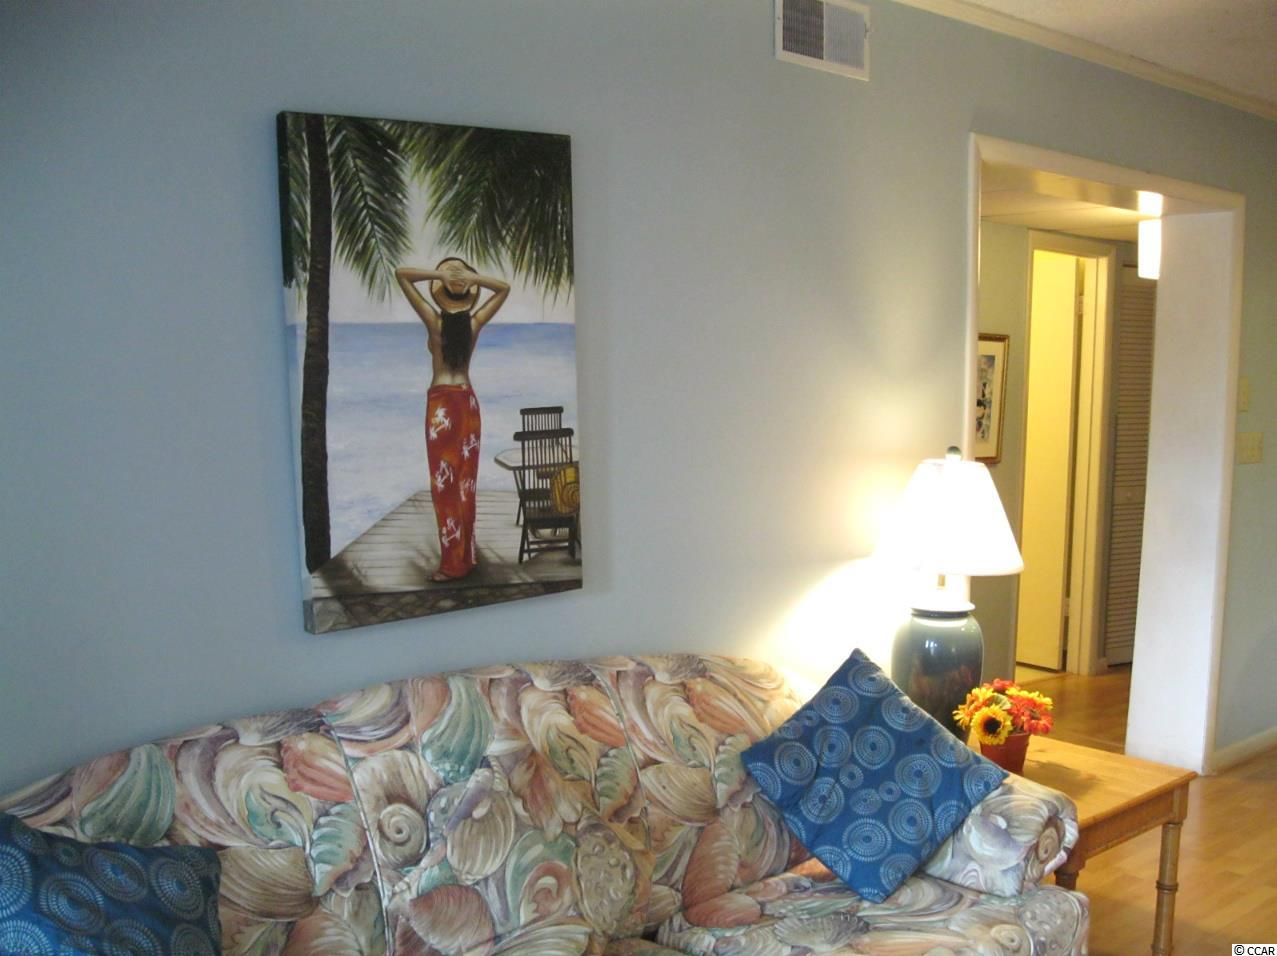 Contact your Realtor for this 3 bedroom condo for sale at  Tilghman Beach & Racquet Club